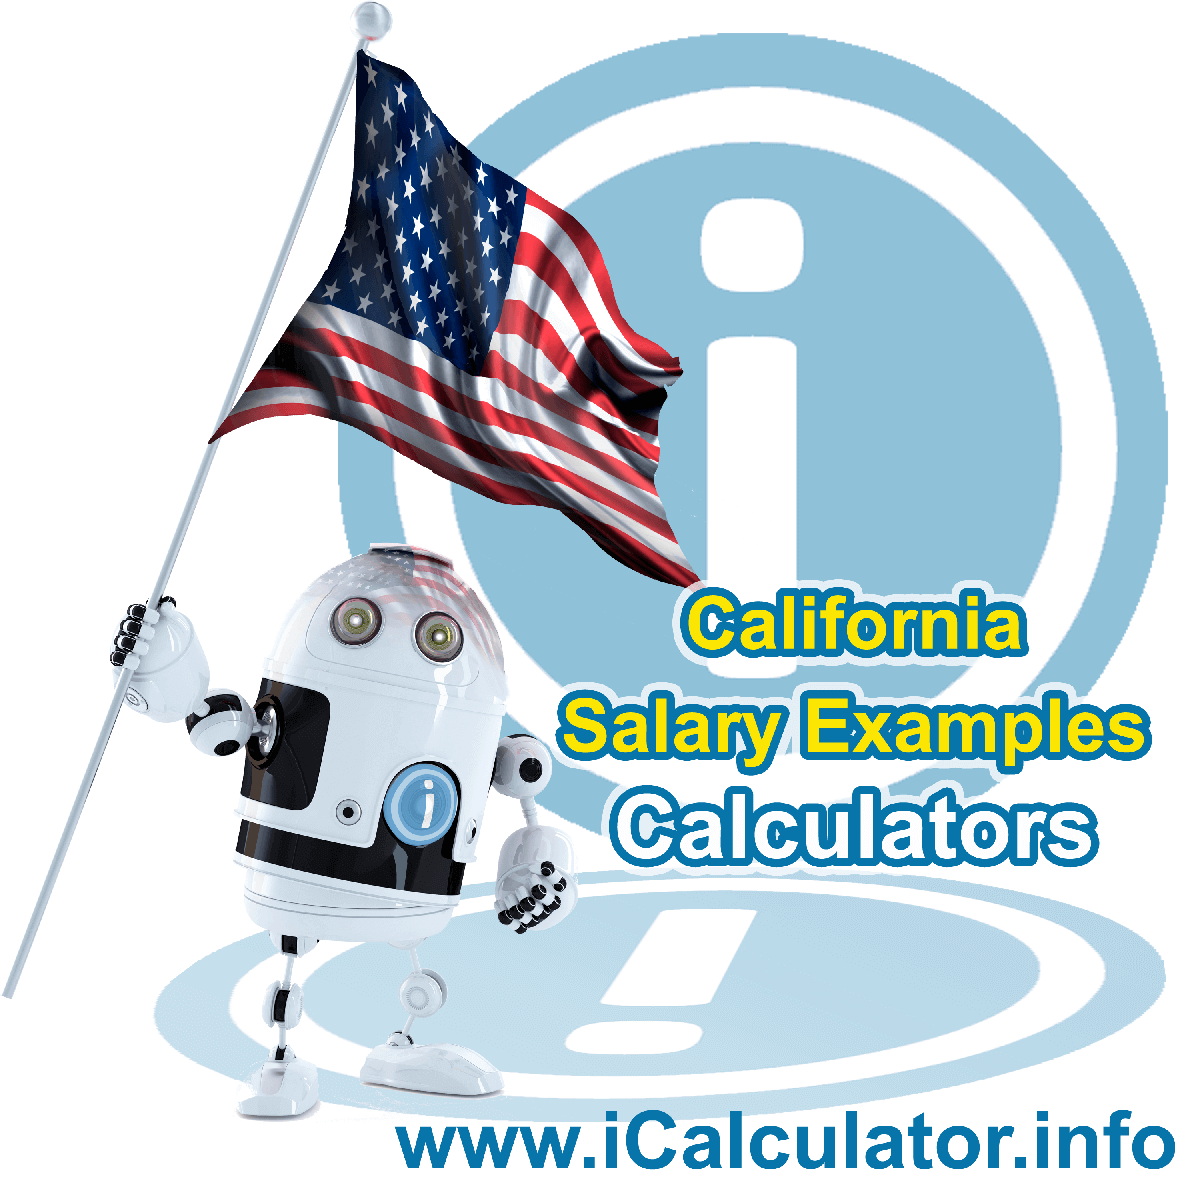 California Salary Example for $10,000.00 in 2020 | iCalculator | $10,000.00 salary example for employee and employer paying California State tincome taxes. Detailed salary after tax calculation including California State Tax, Federal State Tax, Medicare Deductions, Social Security, Capital Gains and other income tax and salary deductions complete with supporting California state tax tables